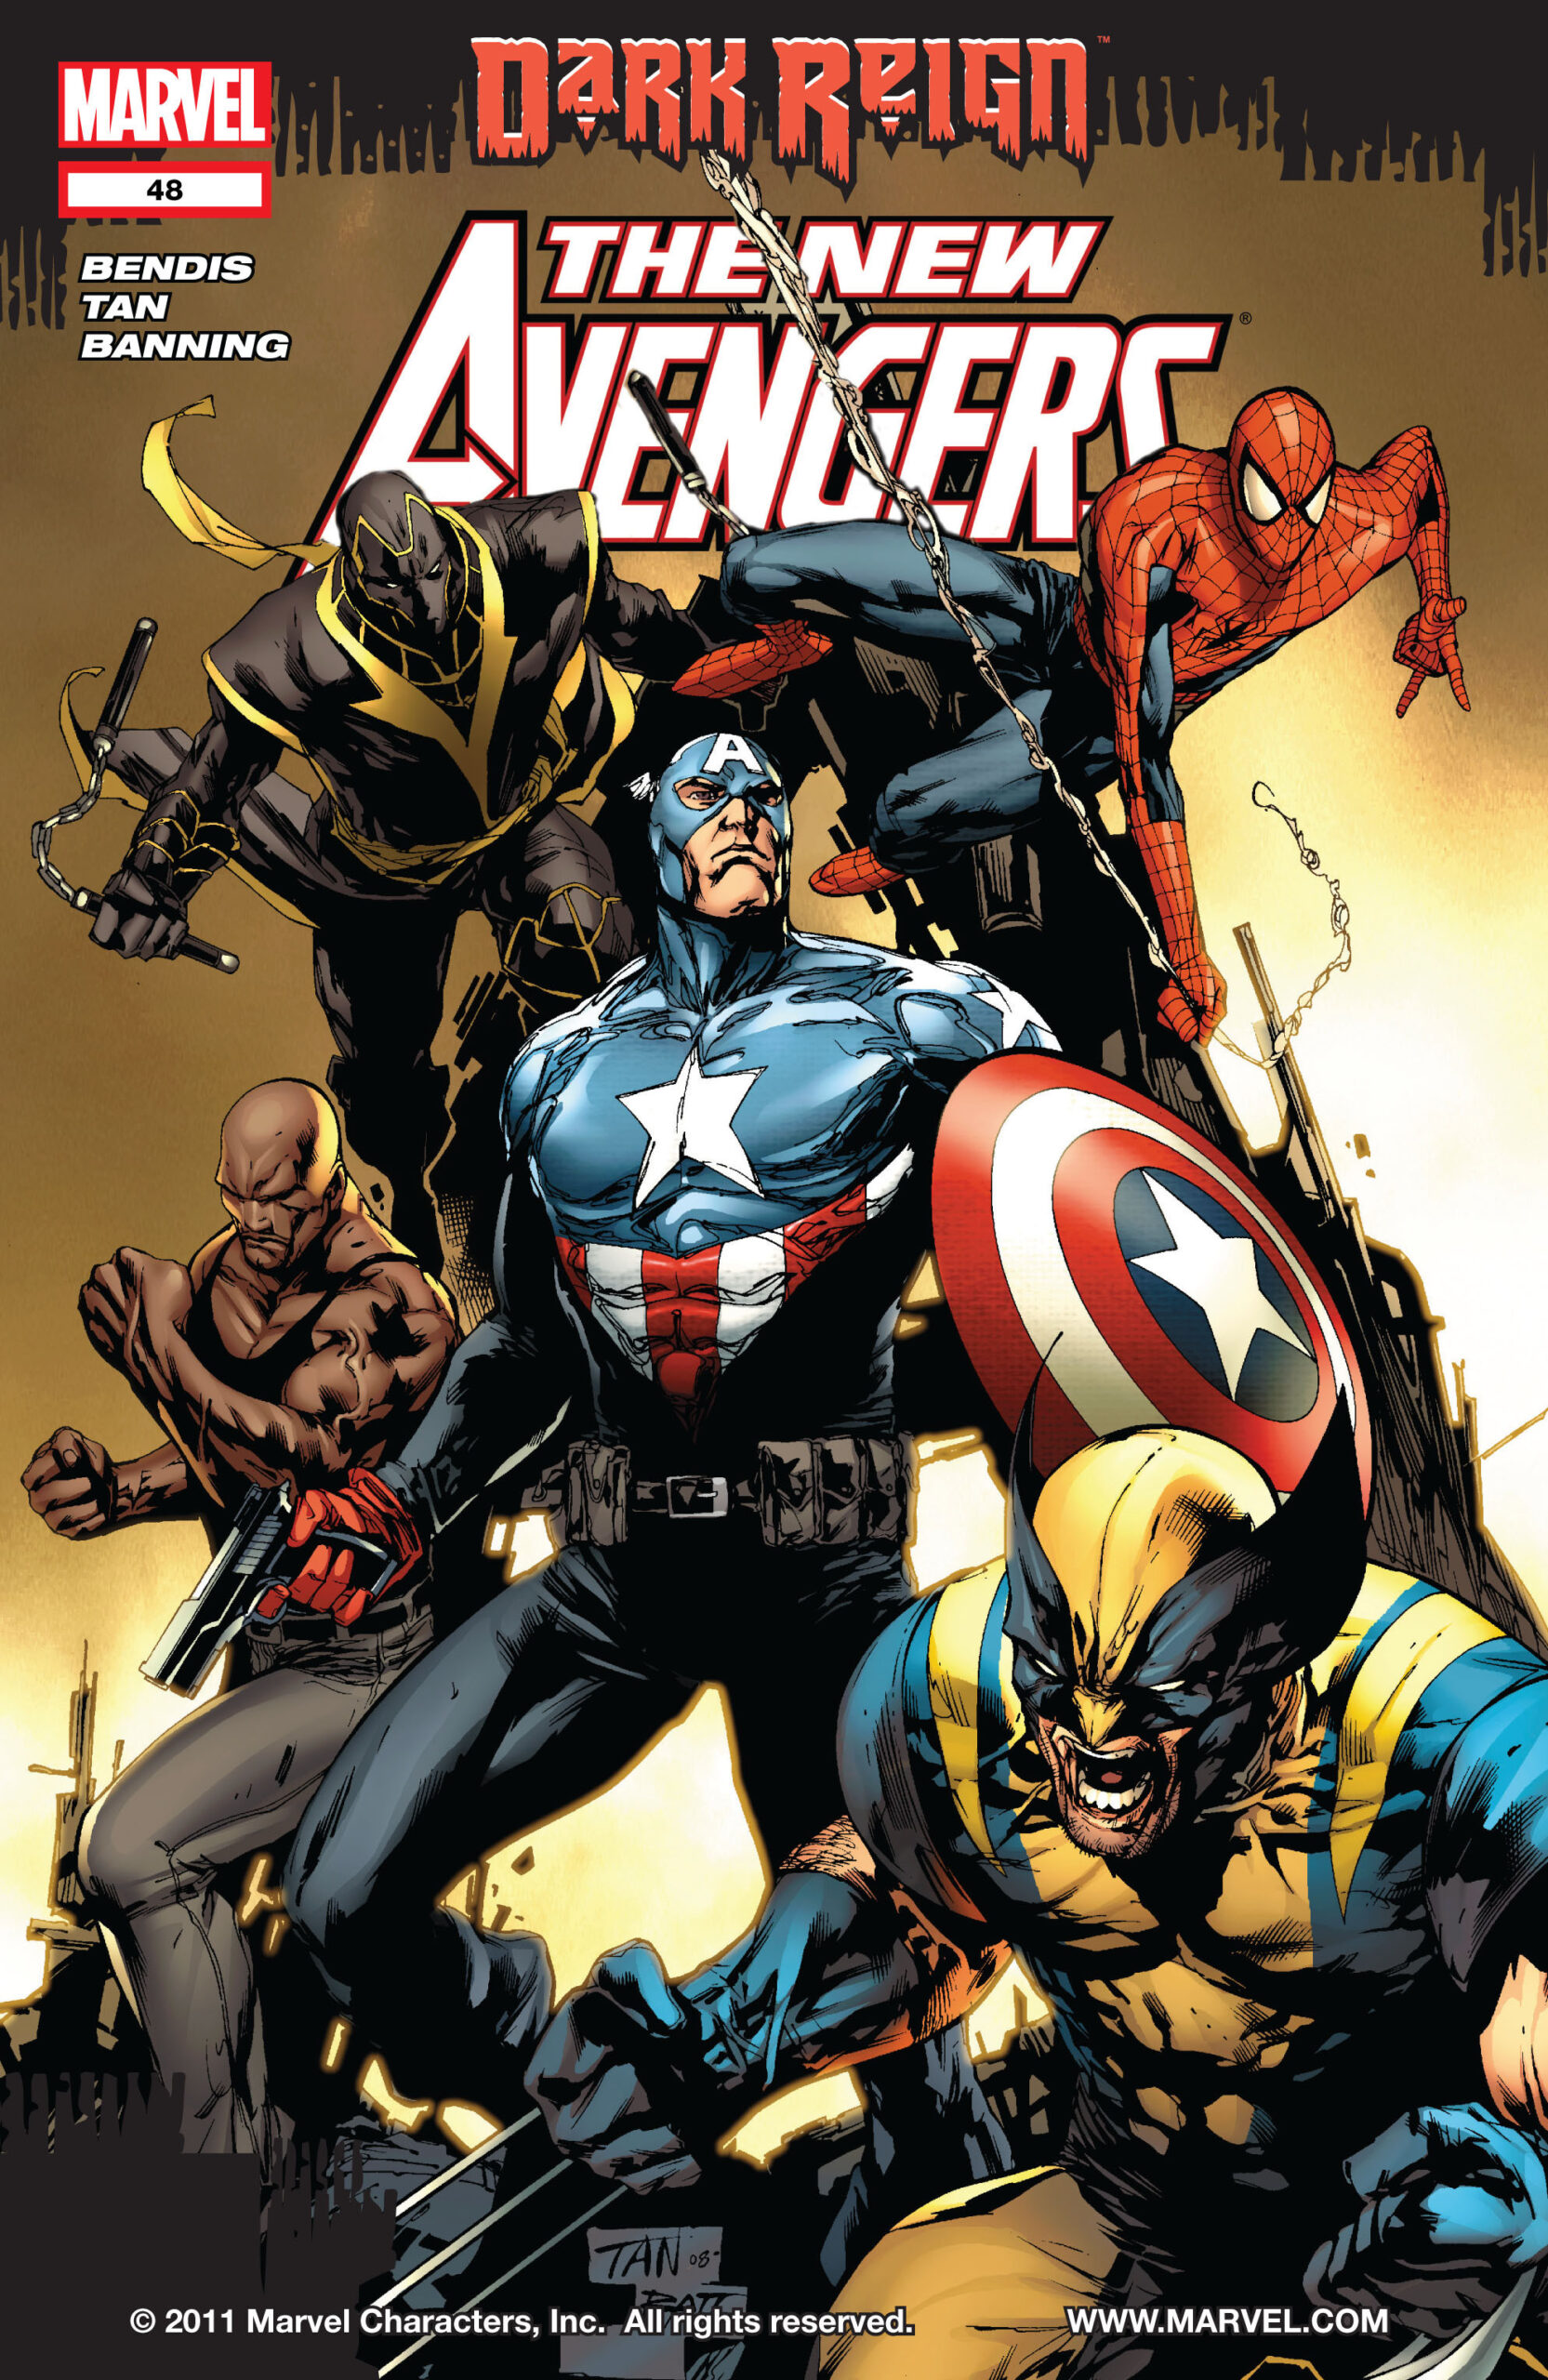 Copertina di New Avengers 48 del 2009, di Billy Tan, Matt Banning e Jason Keith